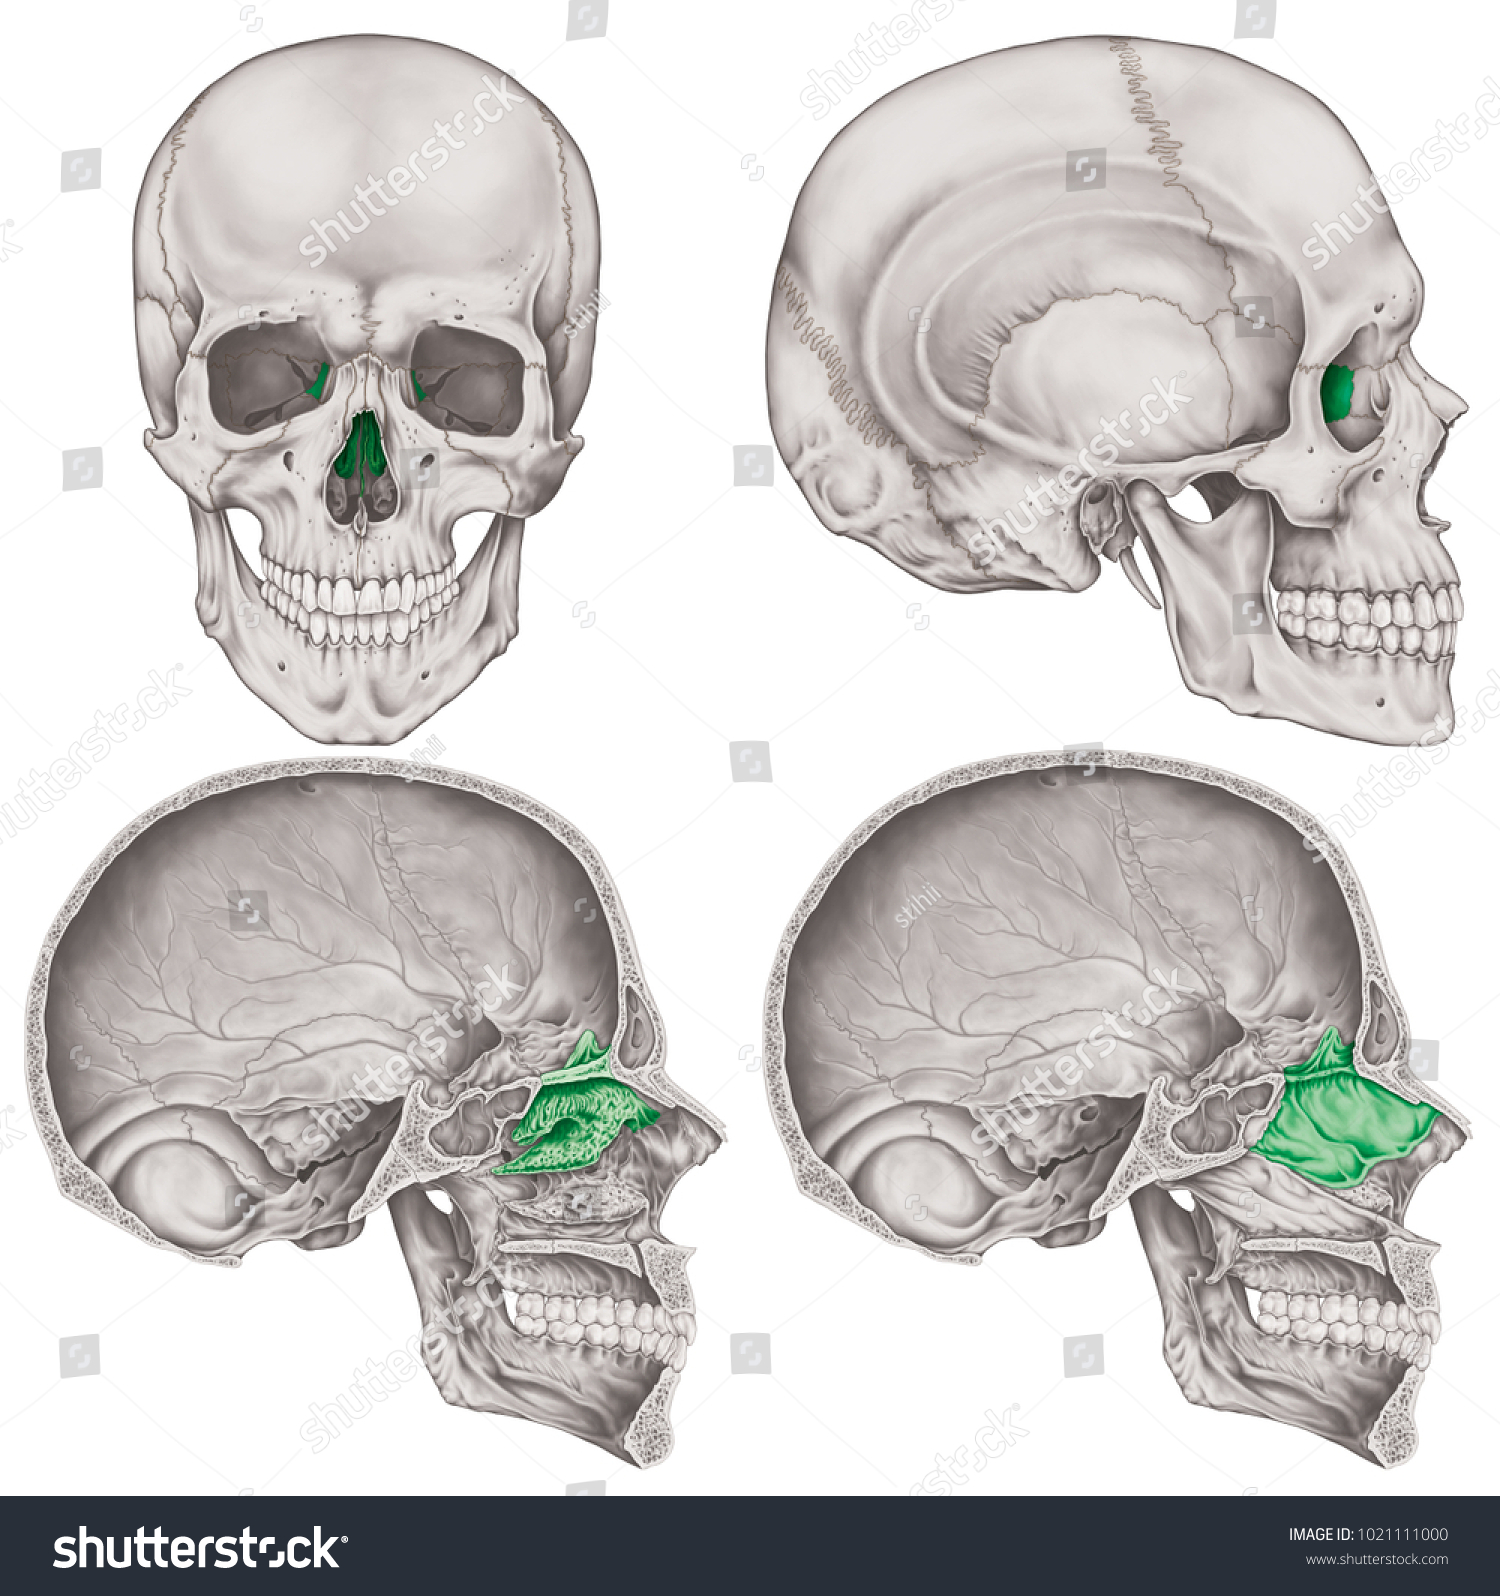 Ethmoid Bone Cranium Bones Head Skull Stock Illustration 1021111000 ...